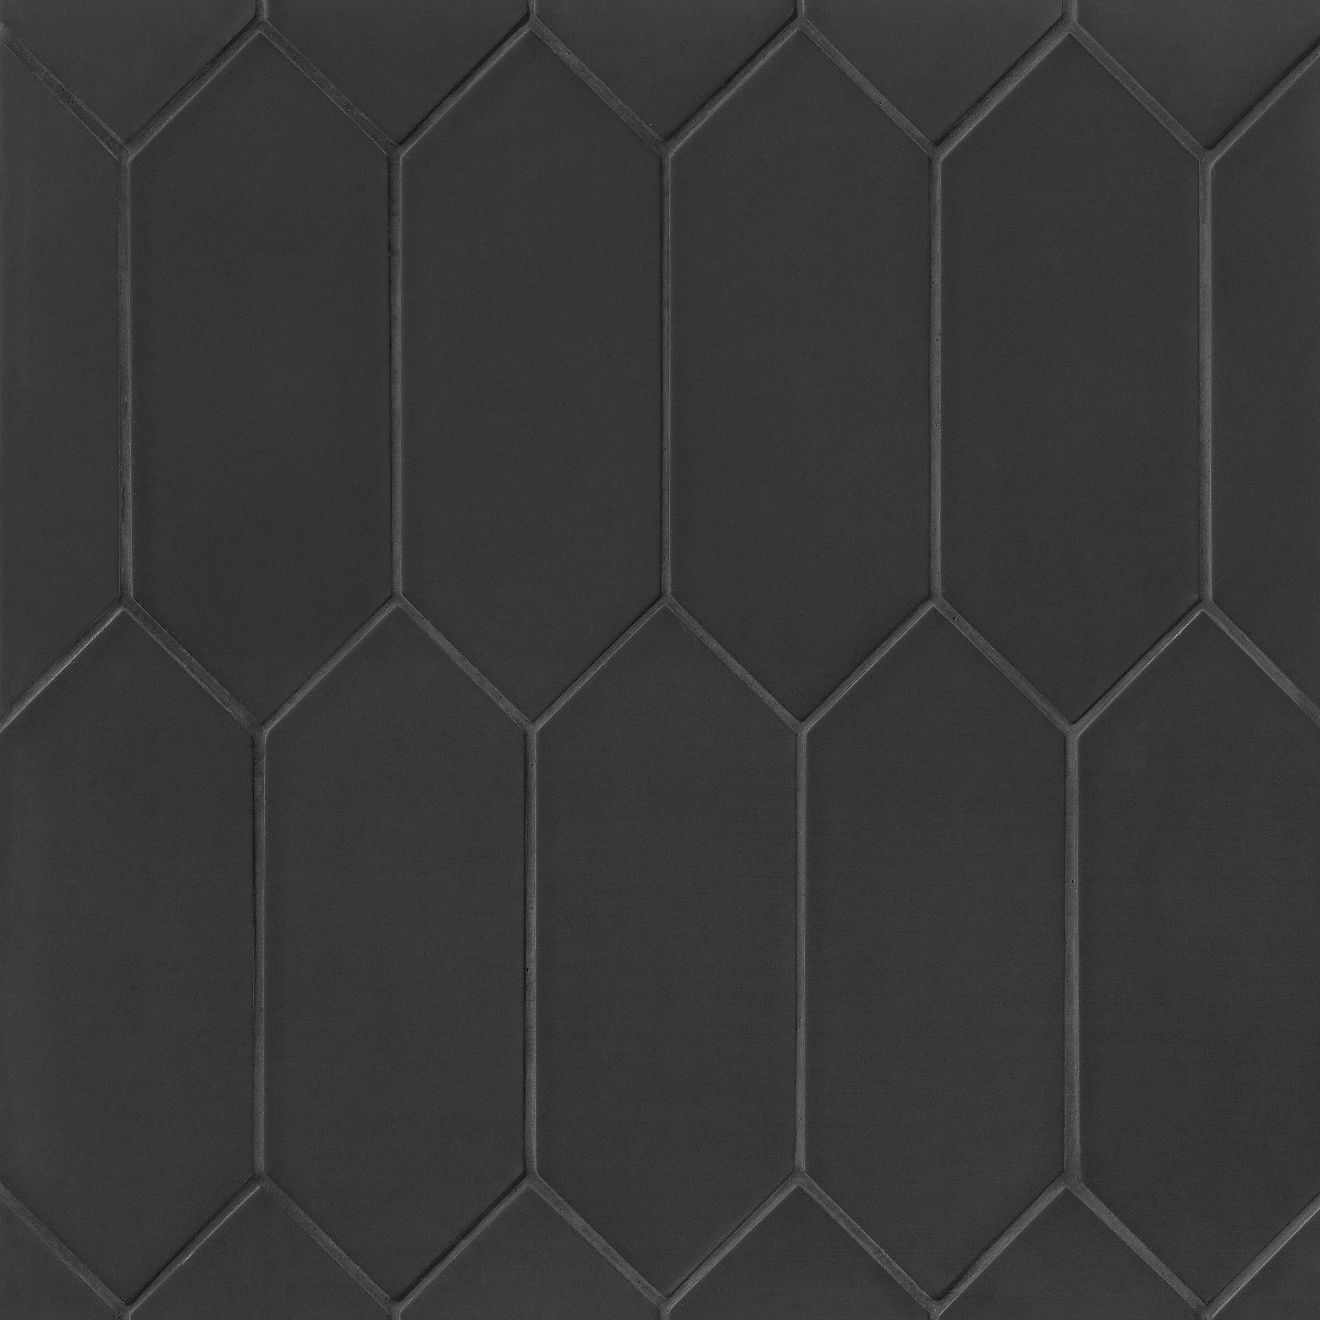 Verve Wall Mosaic in After Dark